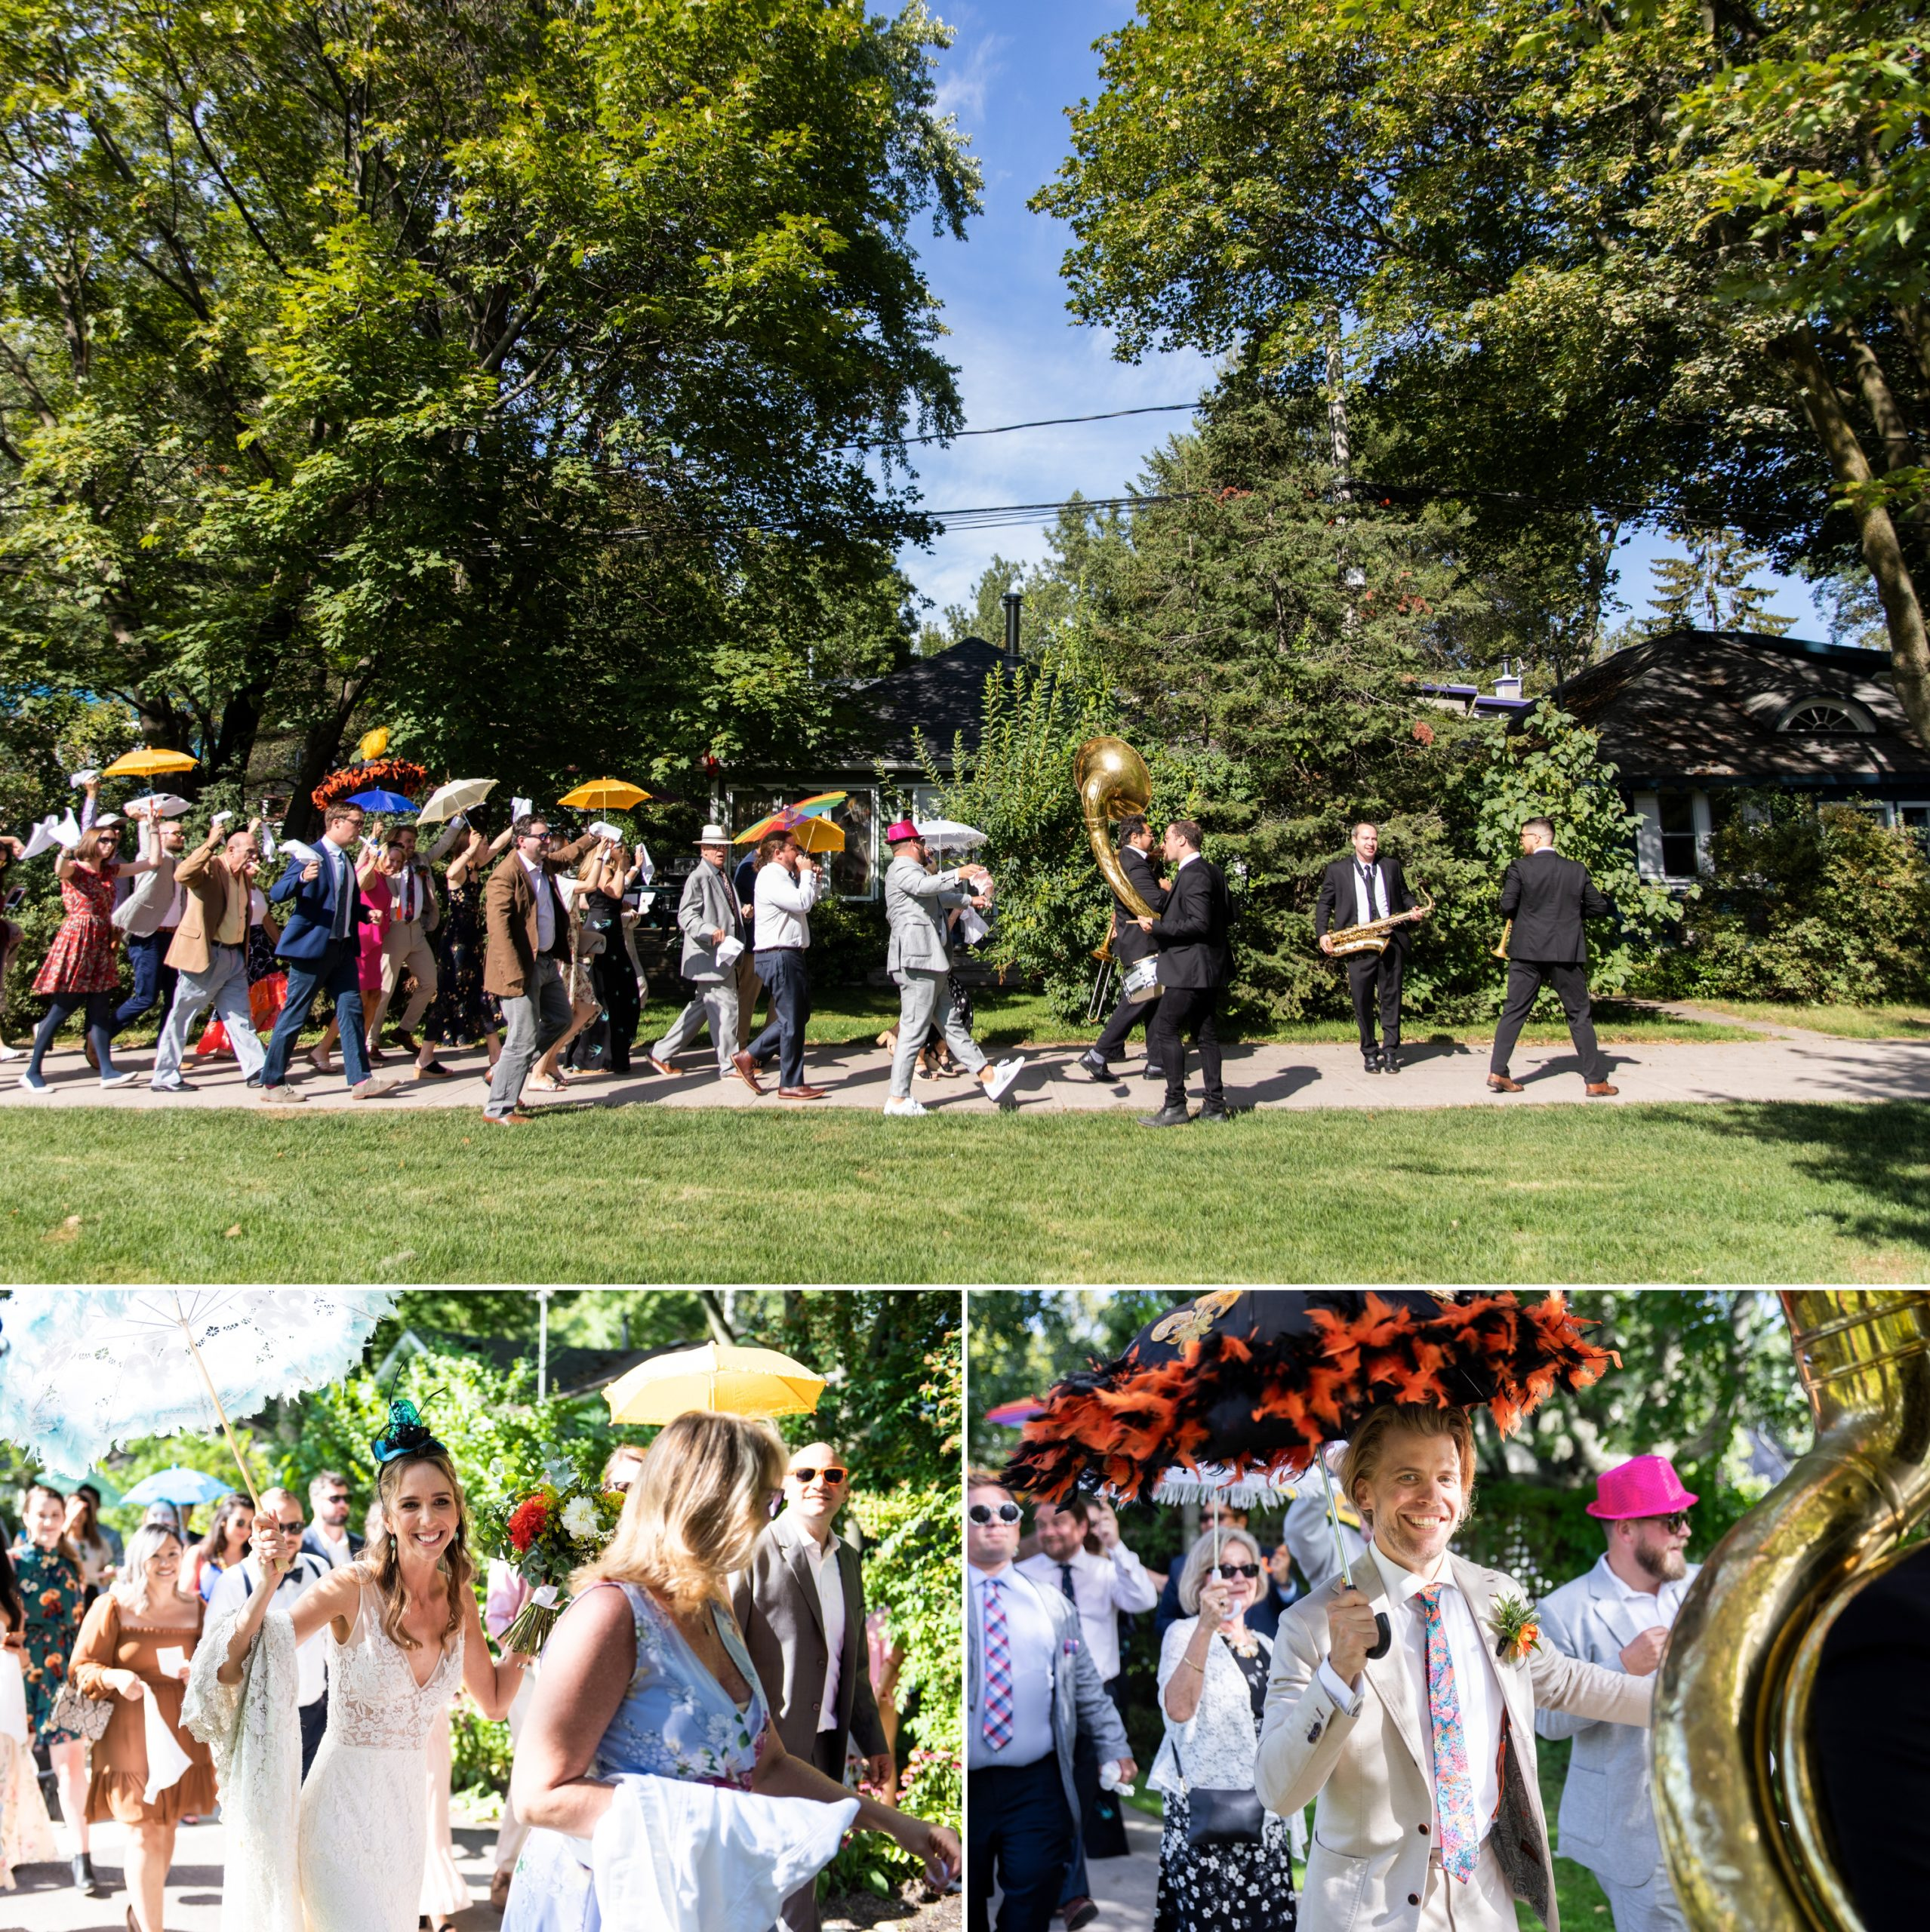 2nd Line Toronto Ward's Island Summer Wedding Zsuzsi Pal Photography